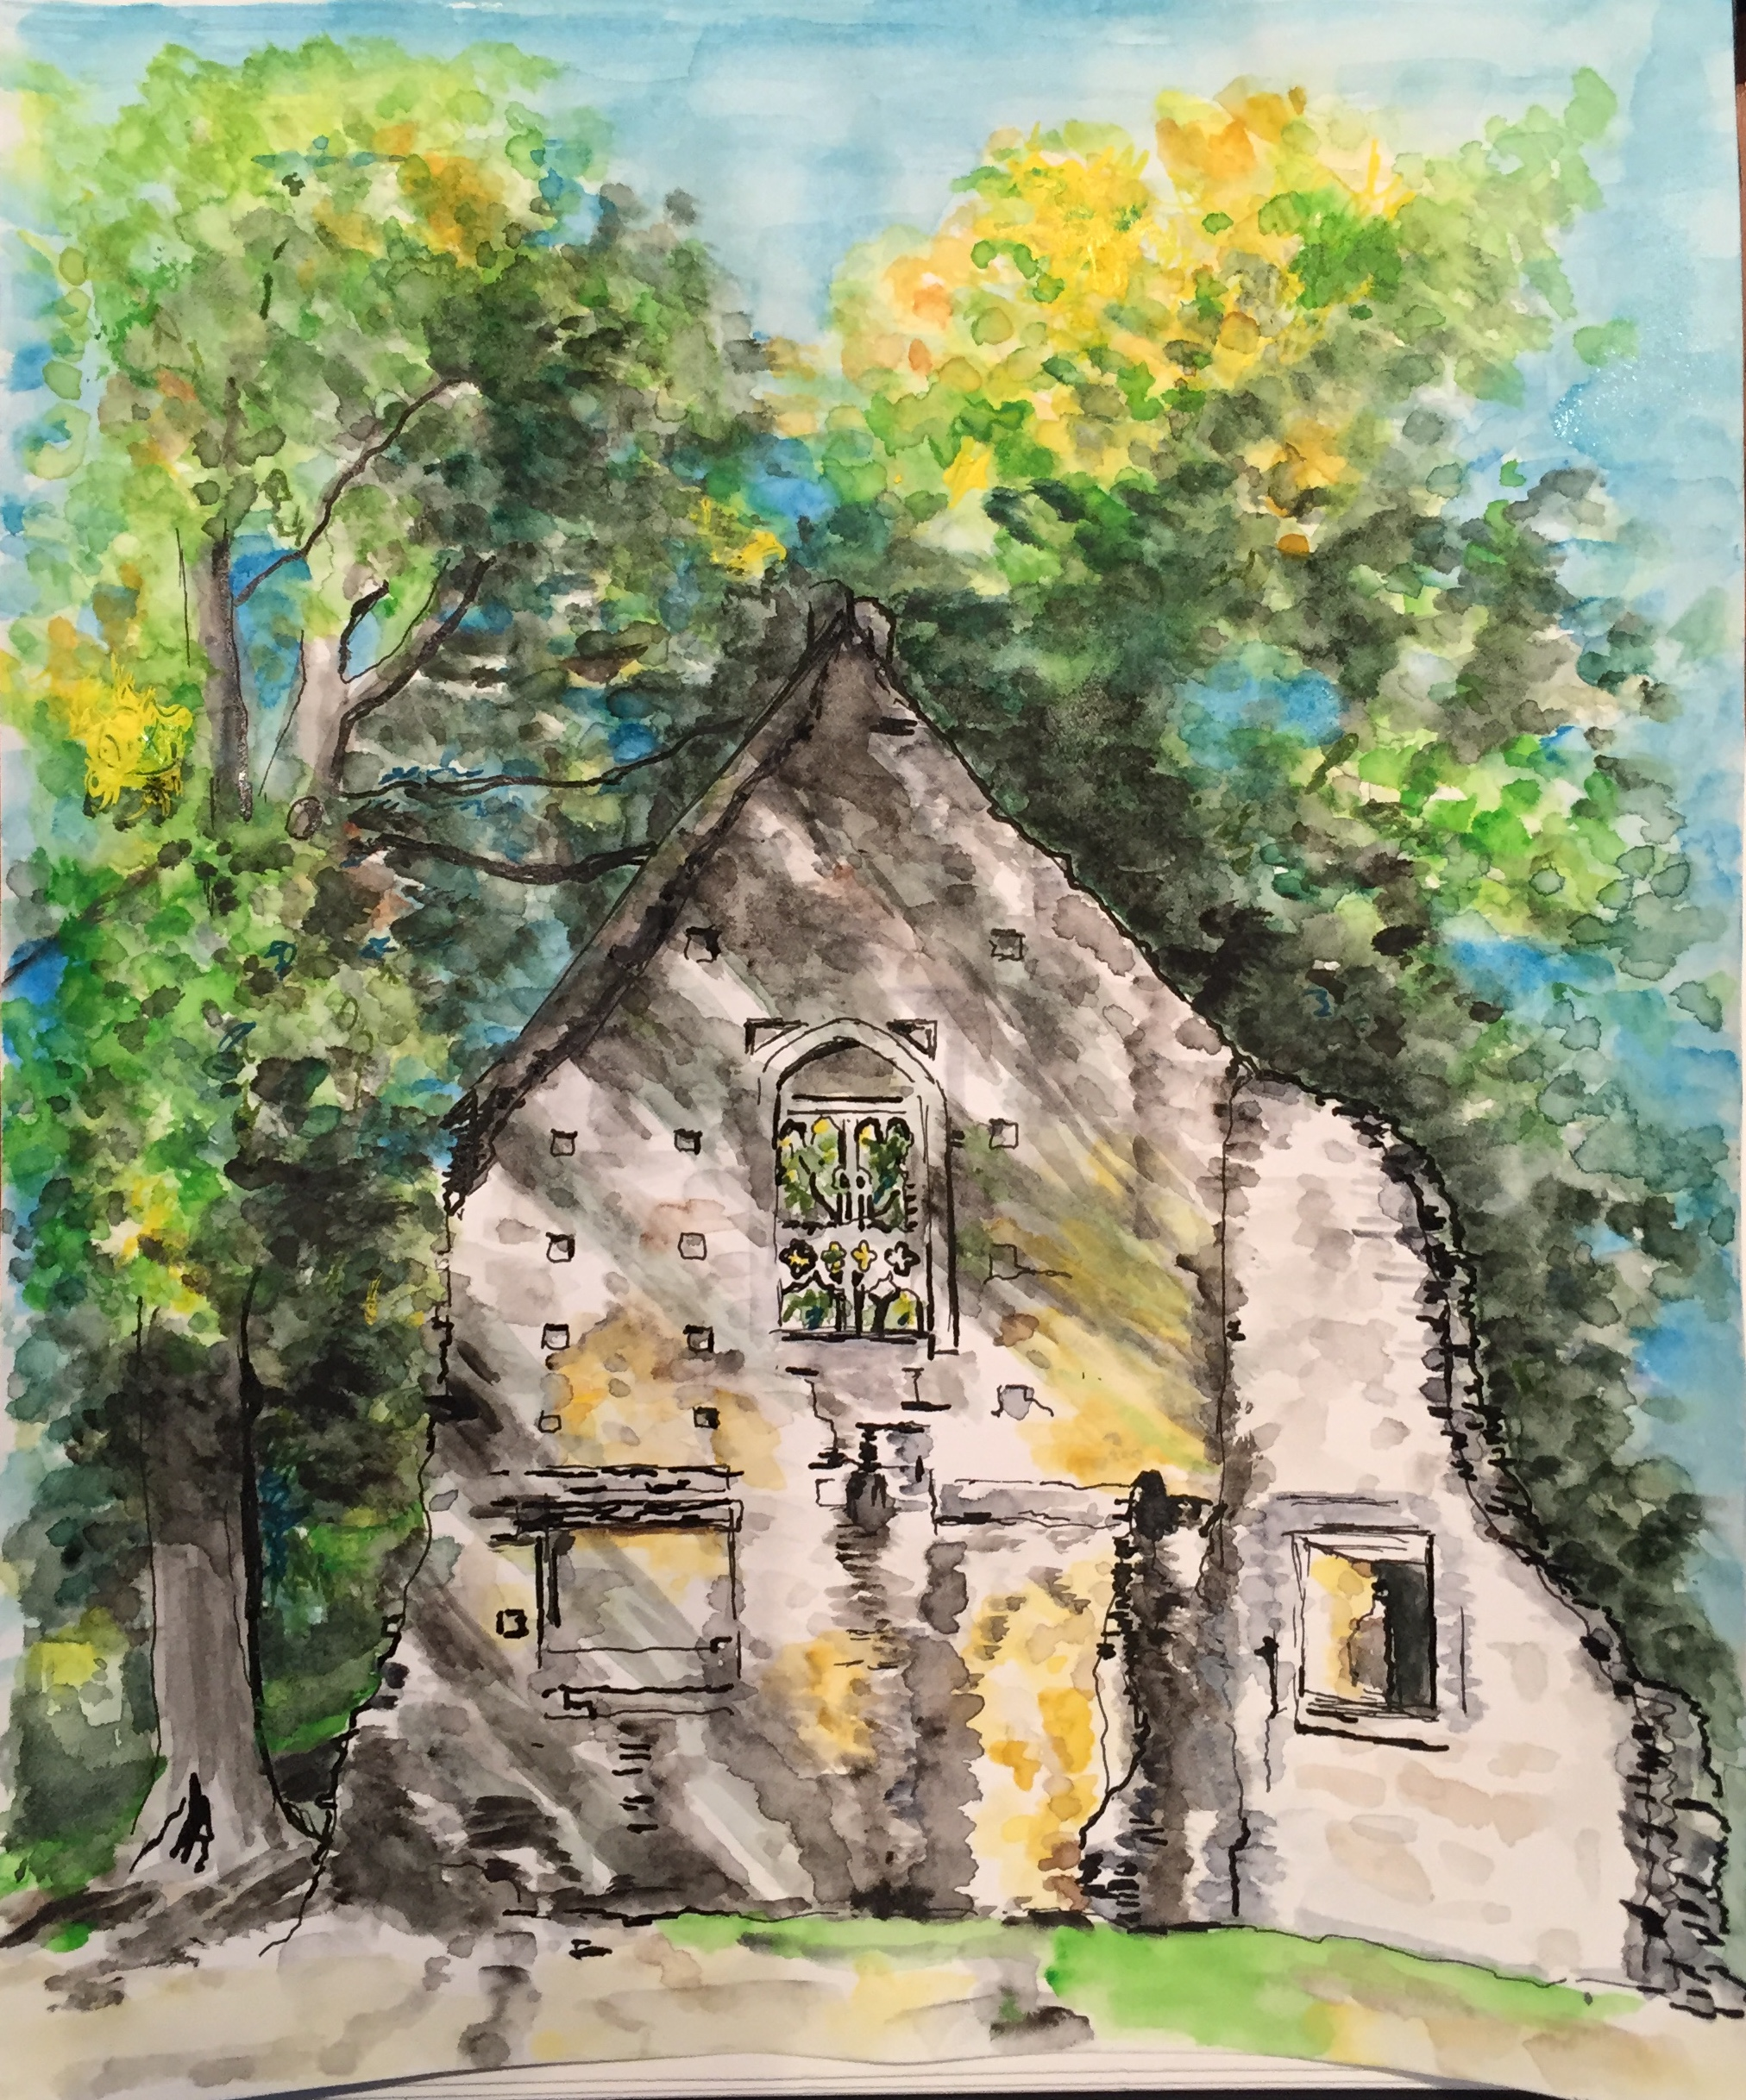 Watercolour Painting of Minster Lovell Hall Ruins in Summertime